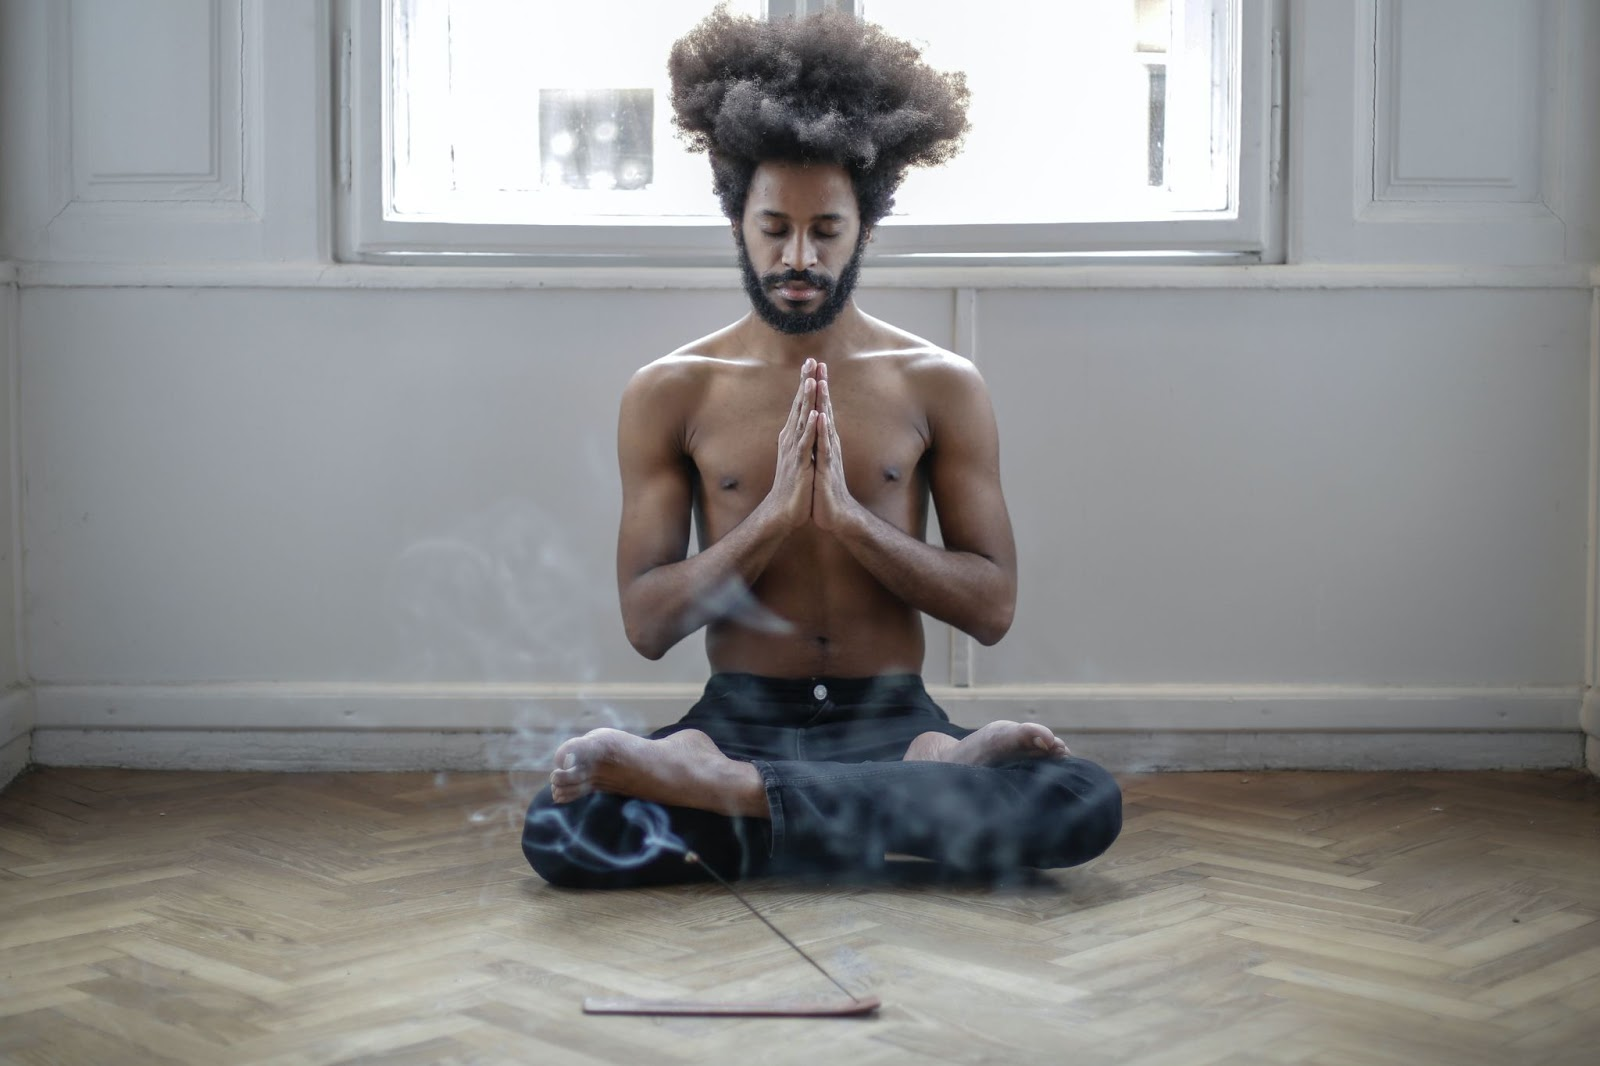 Man in a clear space sitting in the meditative position with his eyes closed.